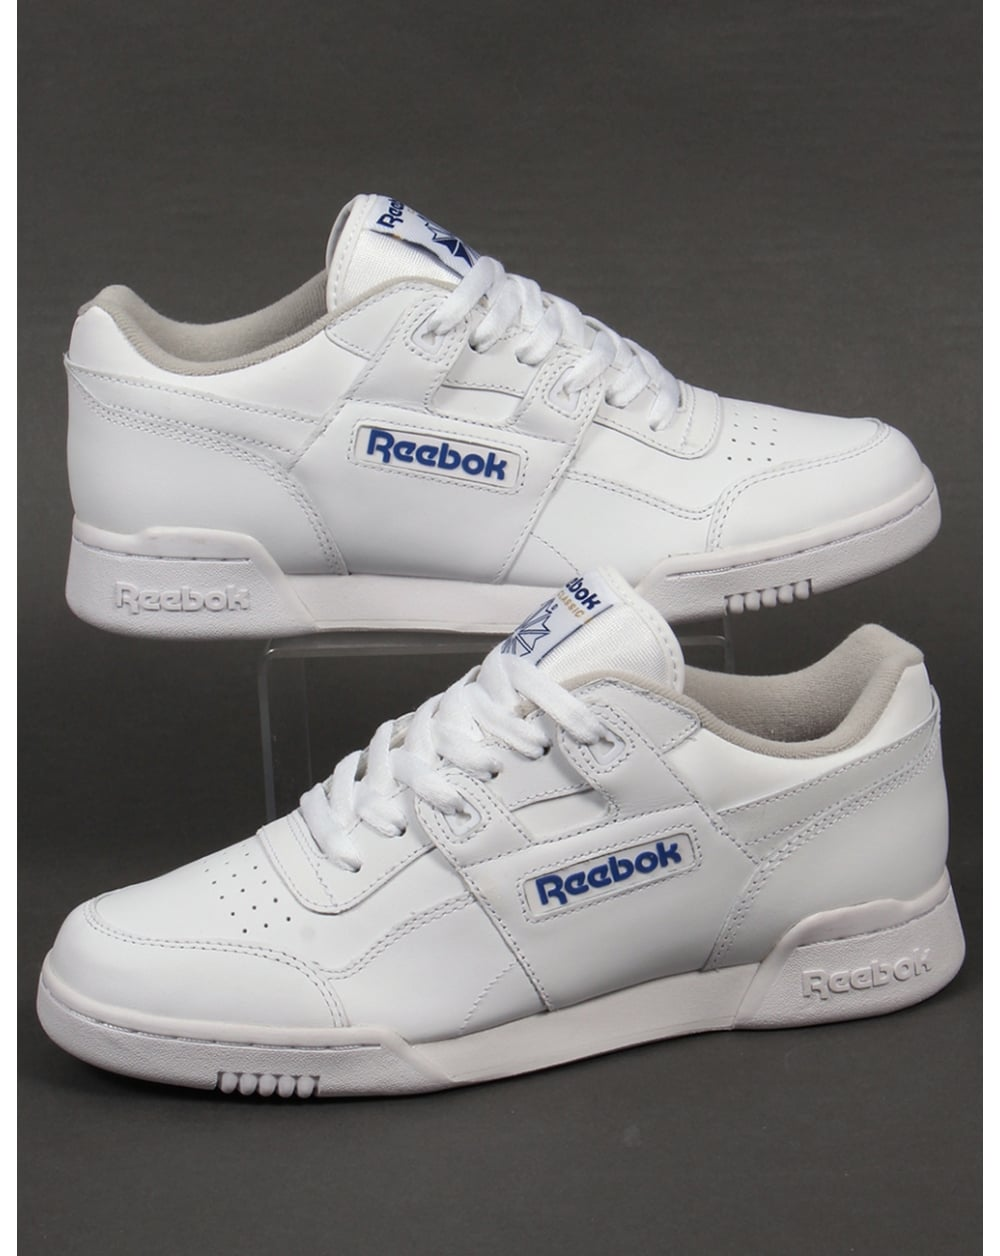 c7477917d41 Reebok Reebok Workout Plus Trainers White